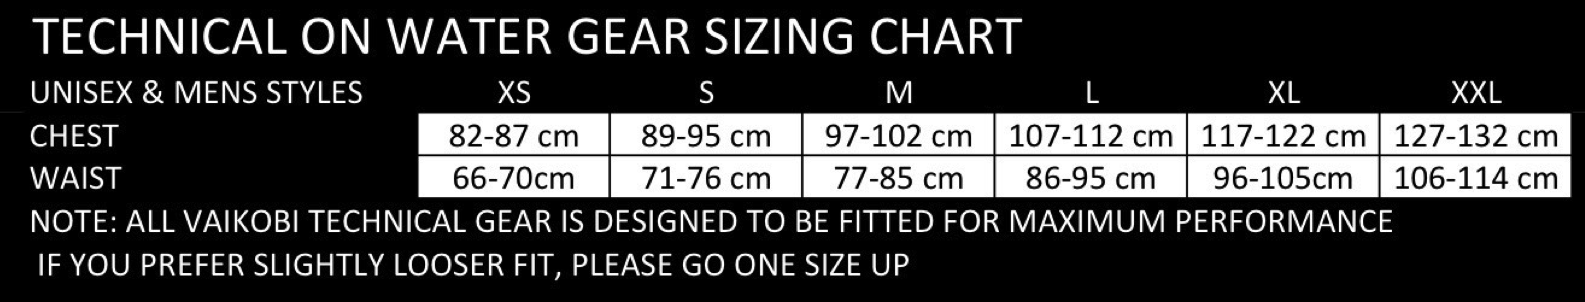 size-guide-unisex.png